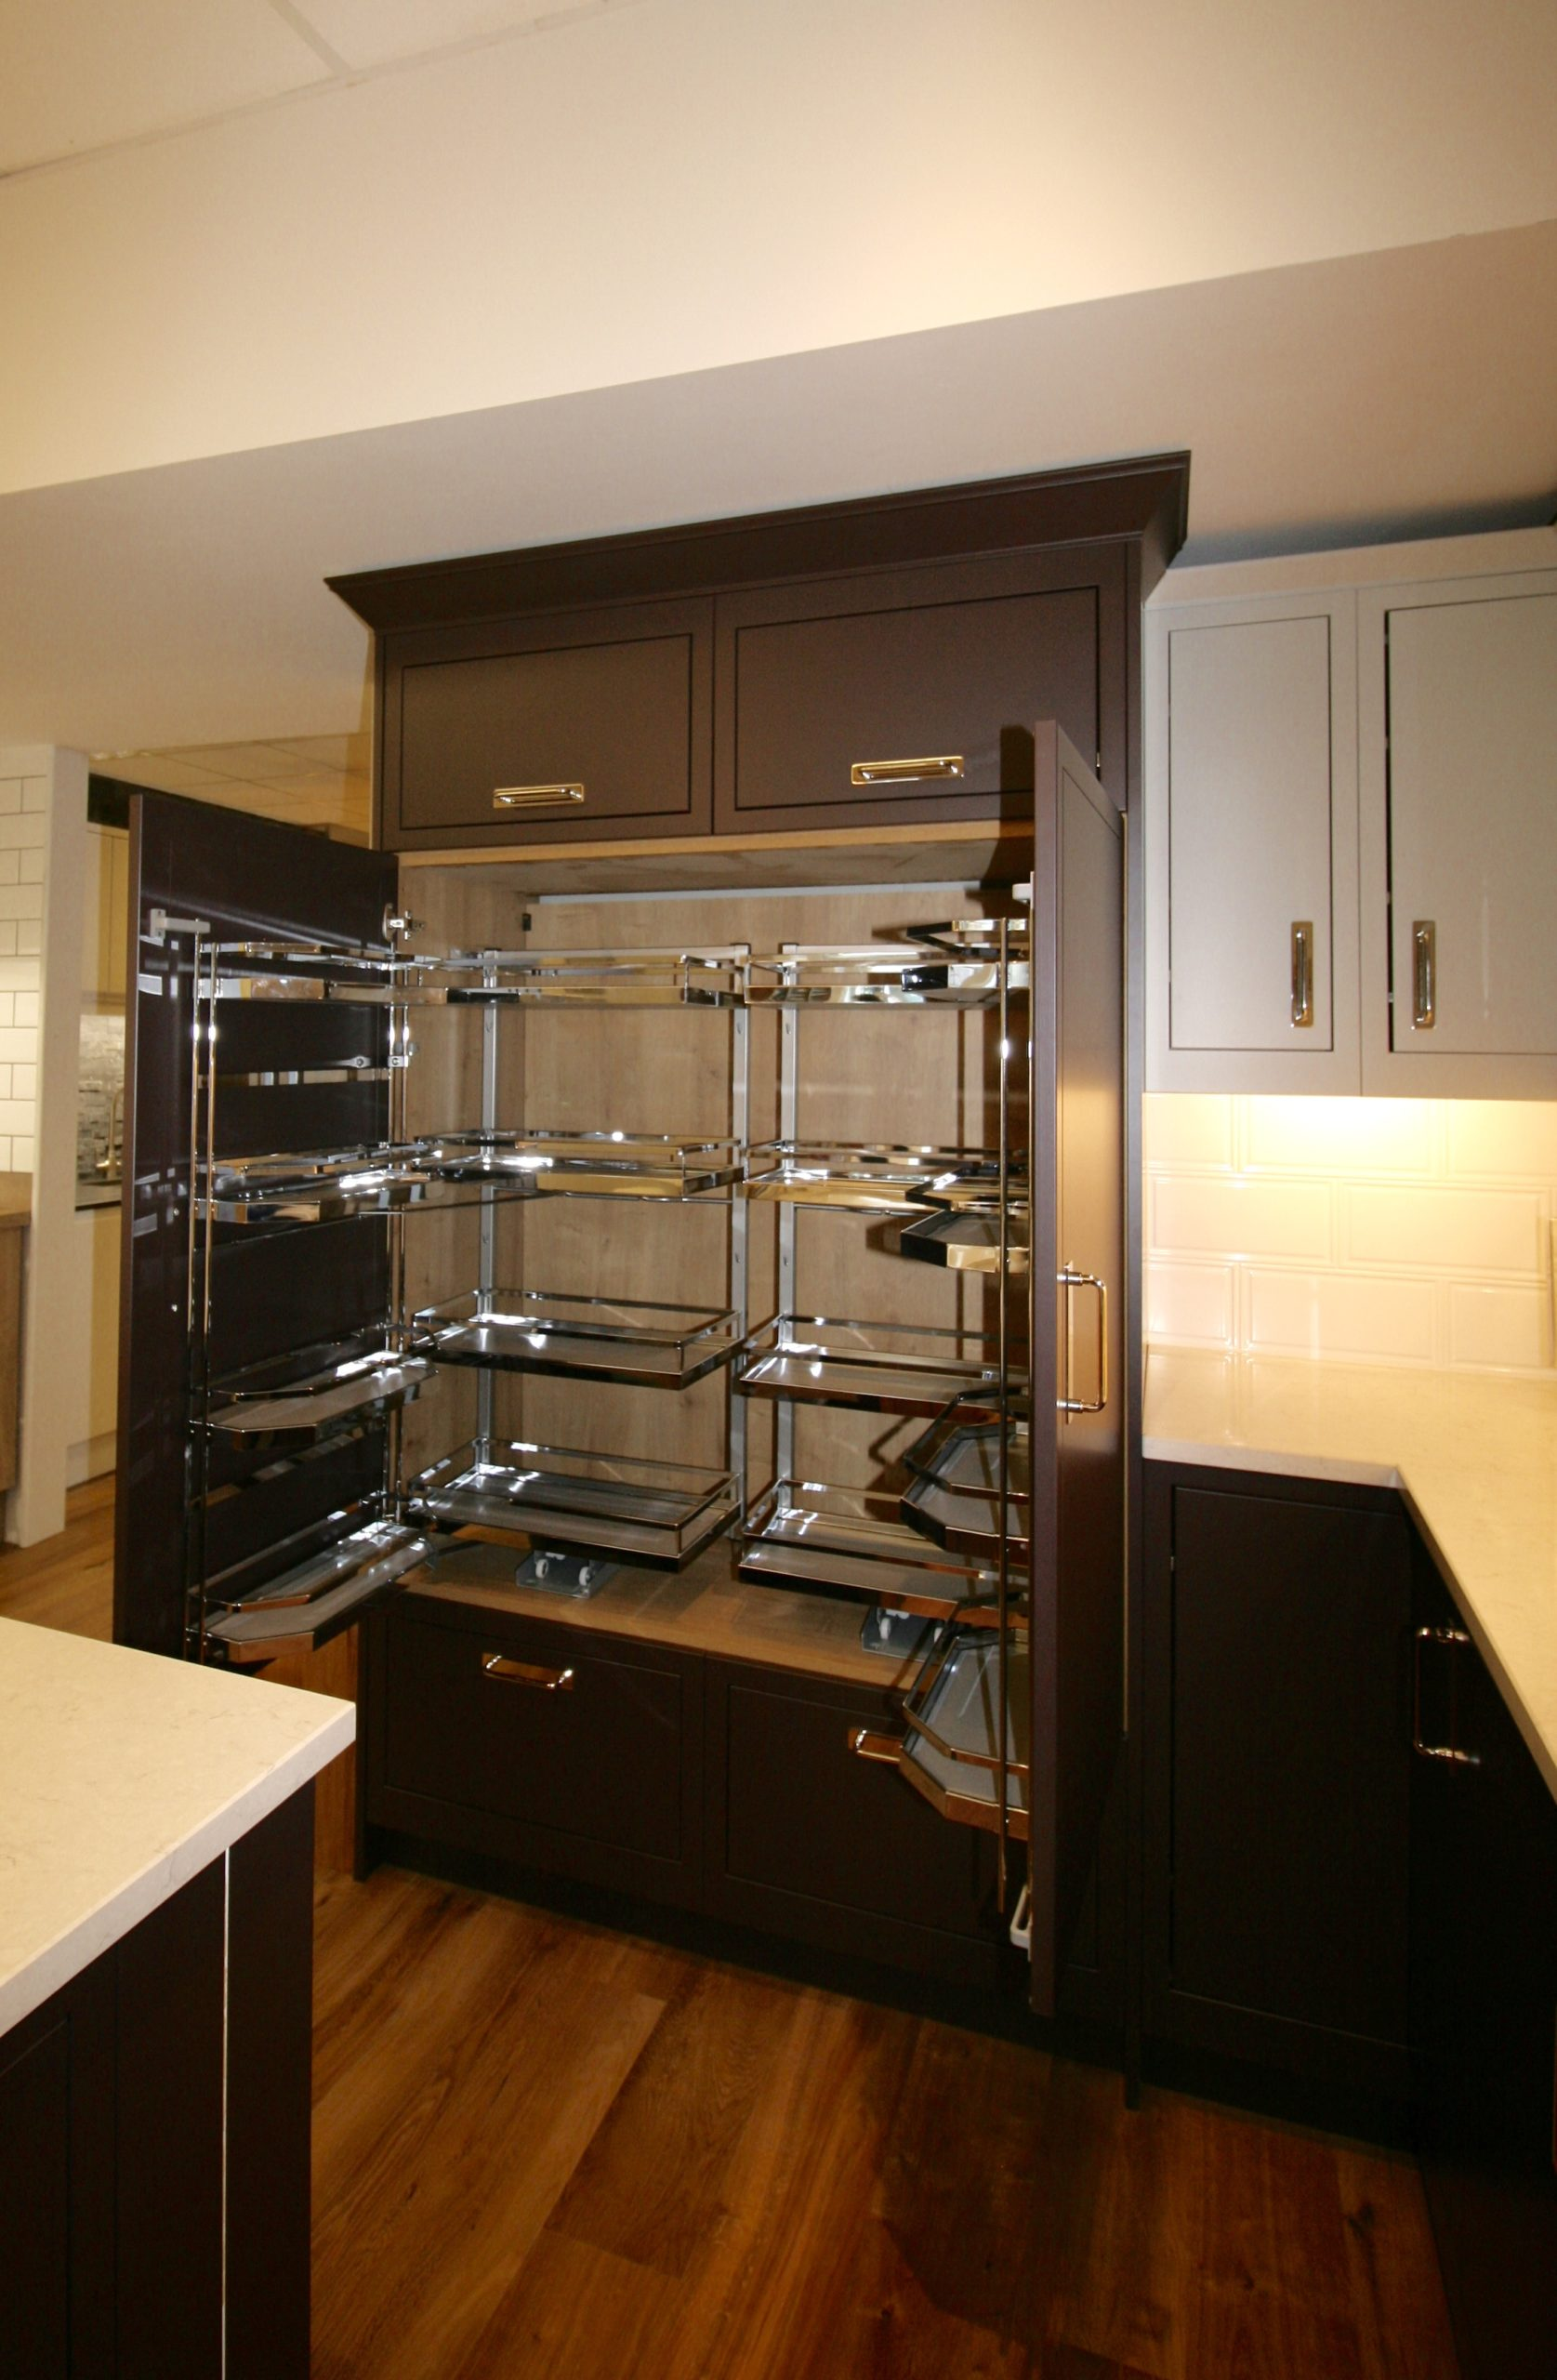 Pull out storage in the larder unit, which will be backlit